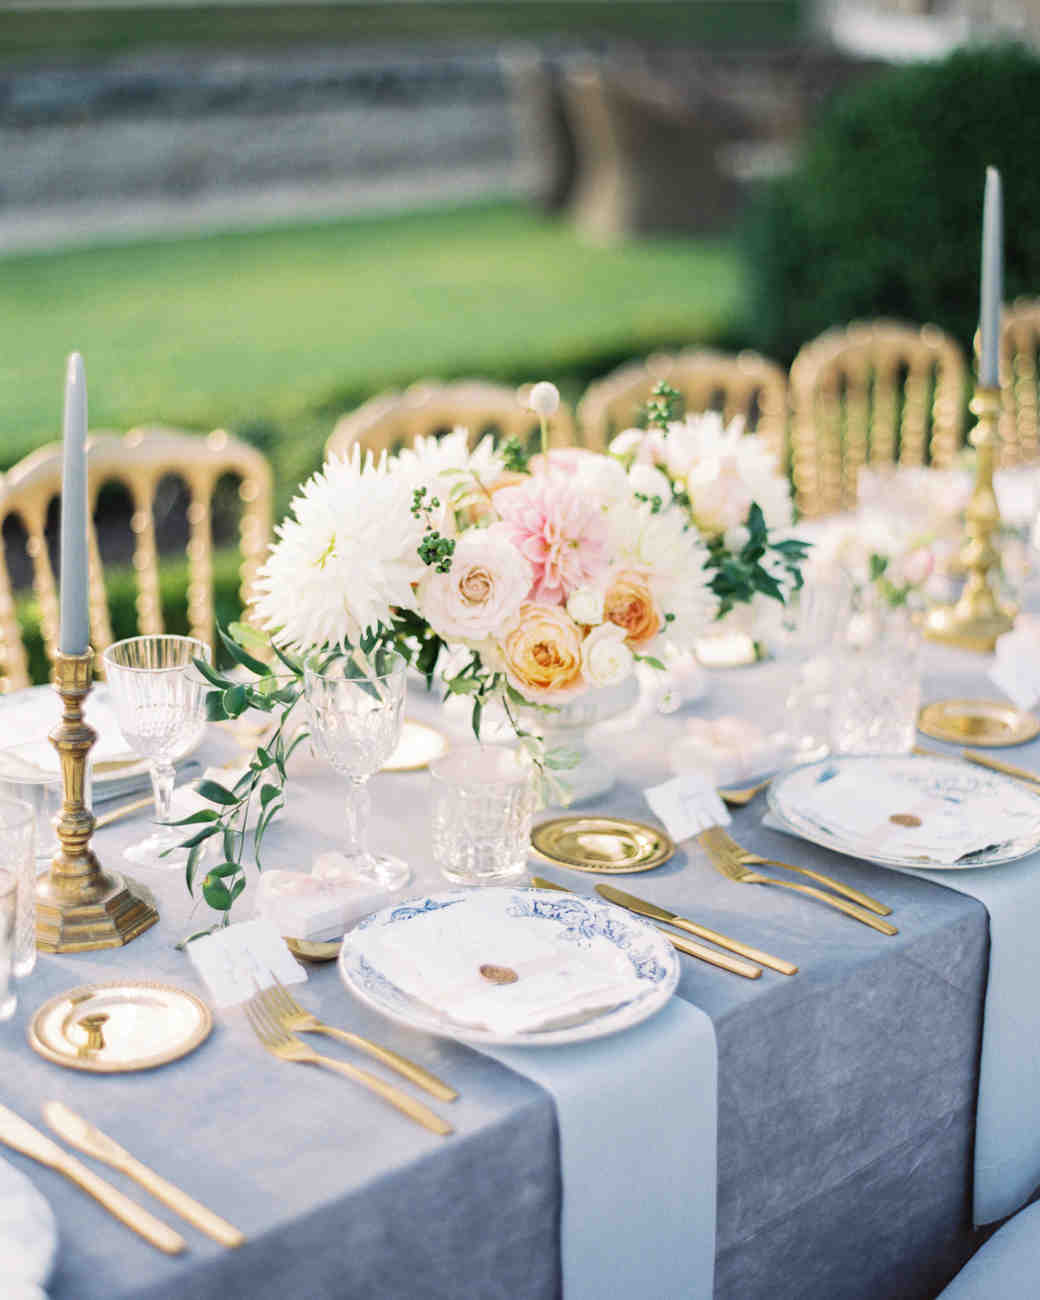 Flower Arrangement Ideas For Weddings: 40 Of Our Favorite Floral Wedding Centerpieces